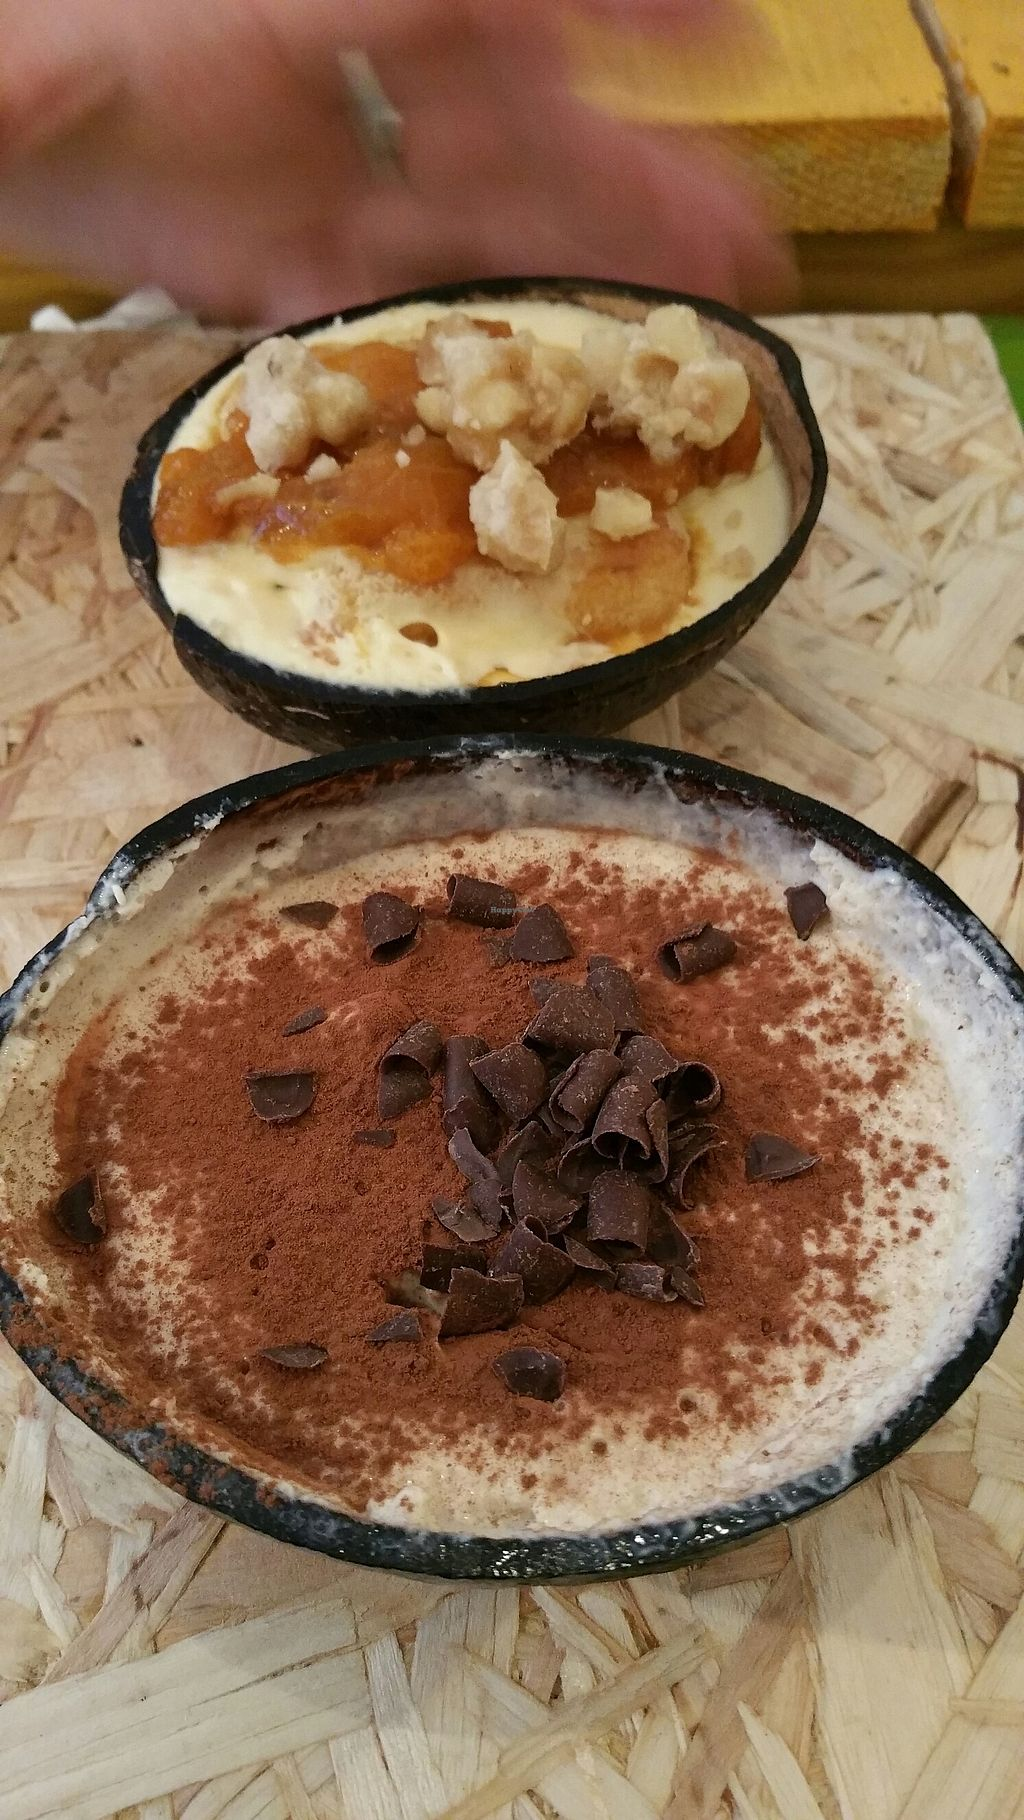 """Photo of HEARTH  by <a href=""""/members/profile/Cathy2001"""">Cathy2001</a> <br/>vegan tiramisu  <br/> August 4, 2017  - <a href='/contact/abuse/image/81827/288816'>Report</a>"""